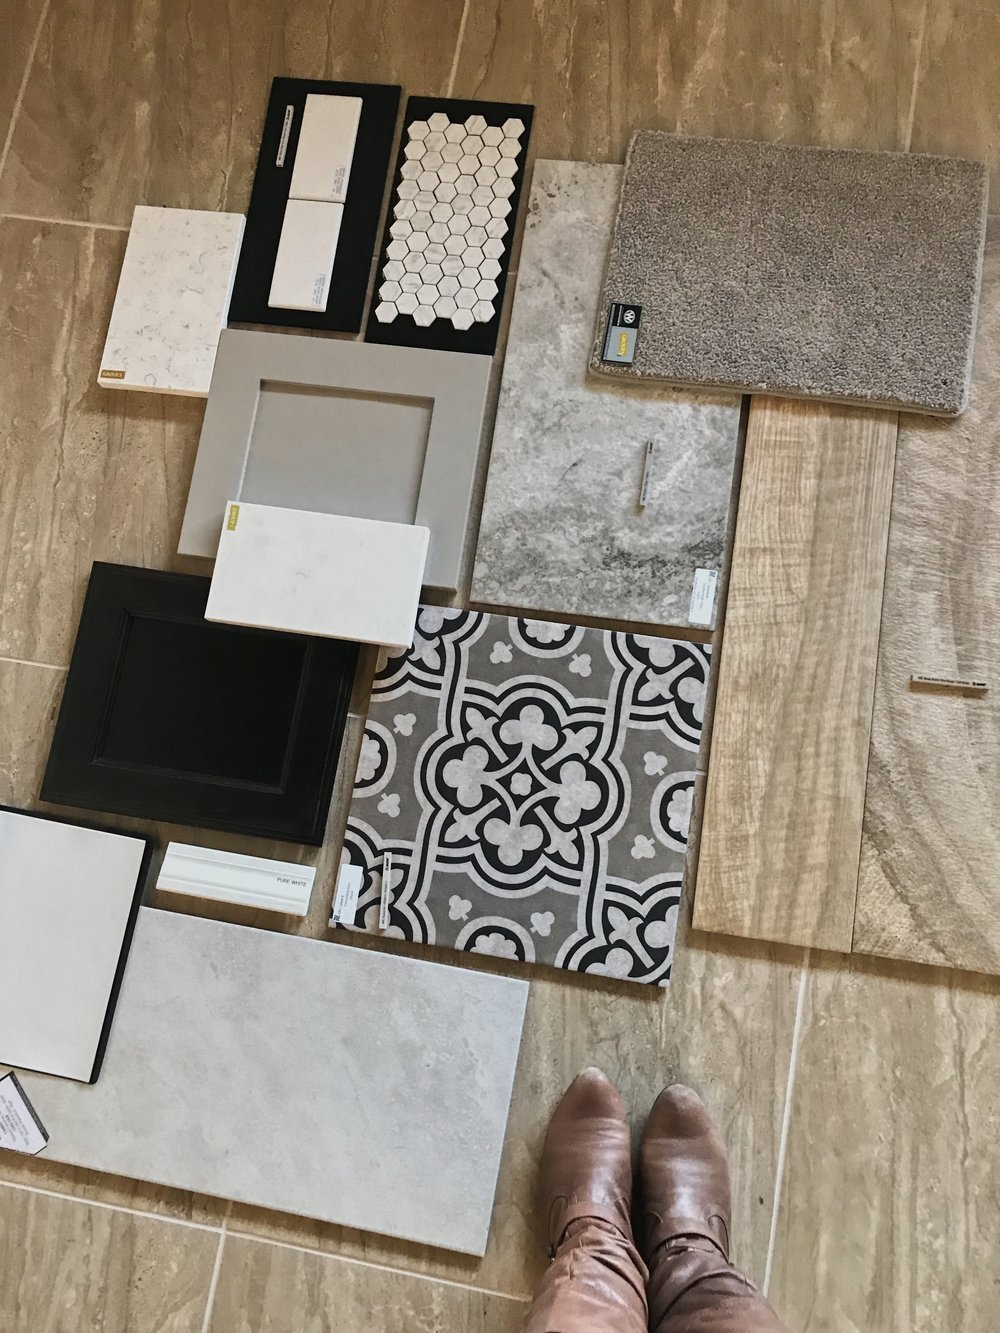 ABOVE:  These are all the finishes we chose for the inside of the house all spread out together. The wood tile will be the main flooring, the detailed tile is in the hall baths, and the cement-look tile is in our master bath and laundry room. The warm gray shakers are the kitchen cabinets and master bathroom cabinets. Classic white subway as the kitchen backsplash and shower wall tile, and a soft white quartz for all the countertops throughout.